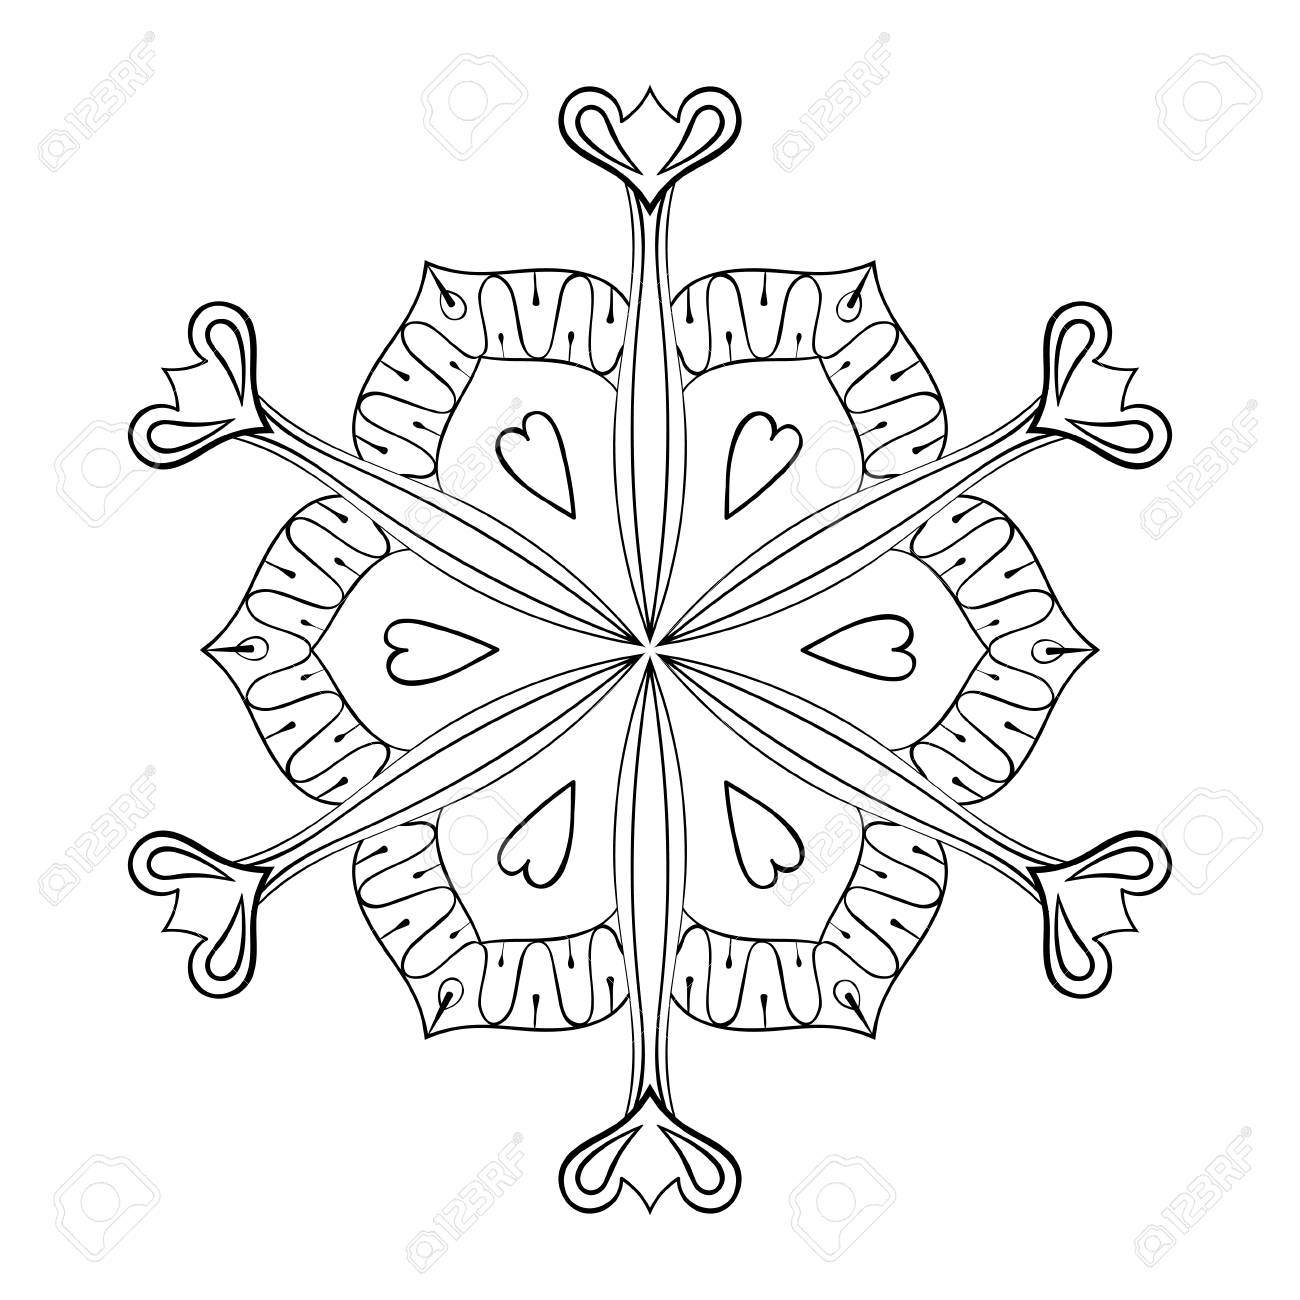 vector vector paper cutout snow flake in zentangle style doodle mandala for adult coloring pages ornamental winter illustration for decoration